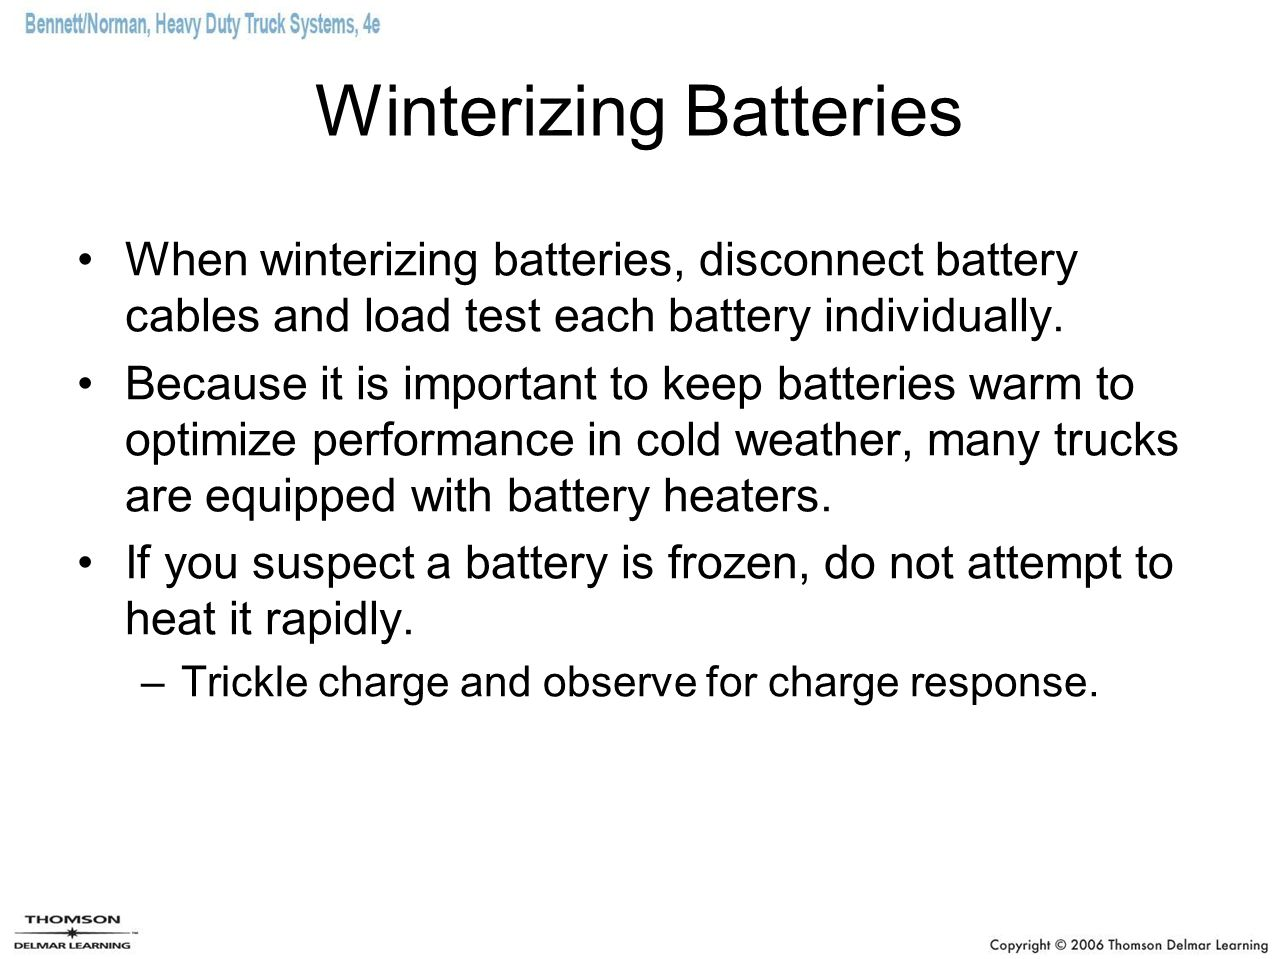 Winterizing Batteries